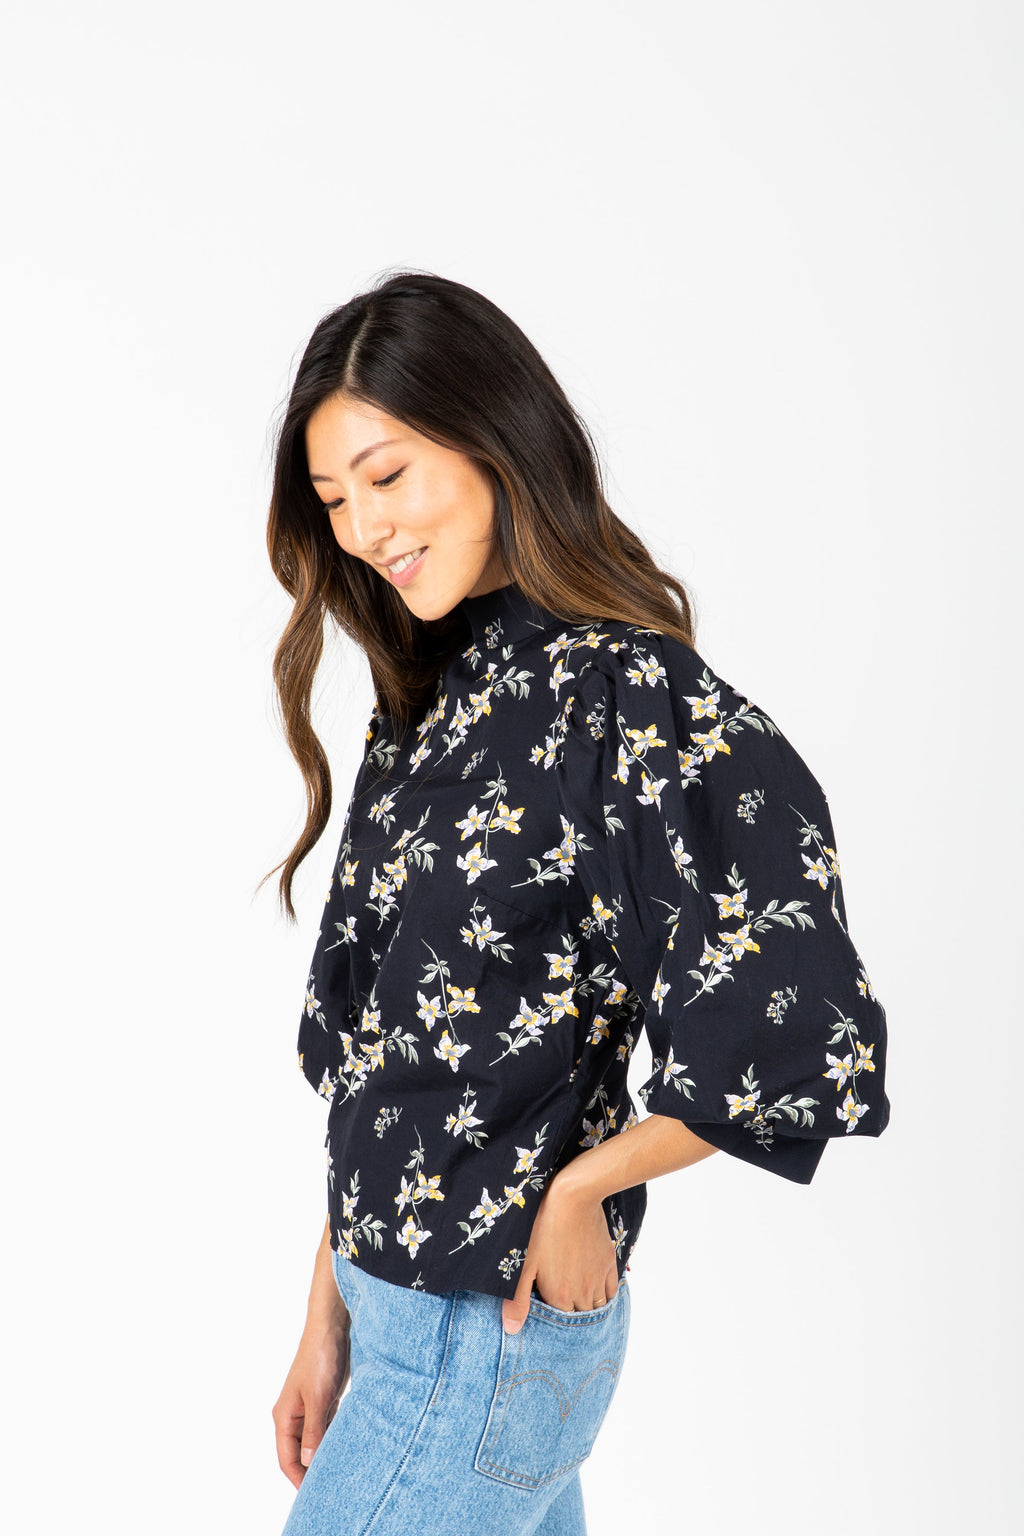 Levi's: High Neck Floral Balloon Sleeve Blouse in Navy, studio shoot; side view